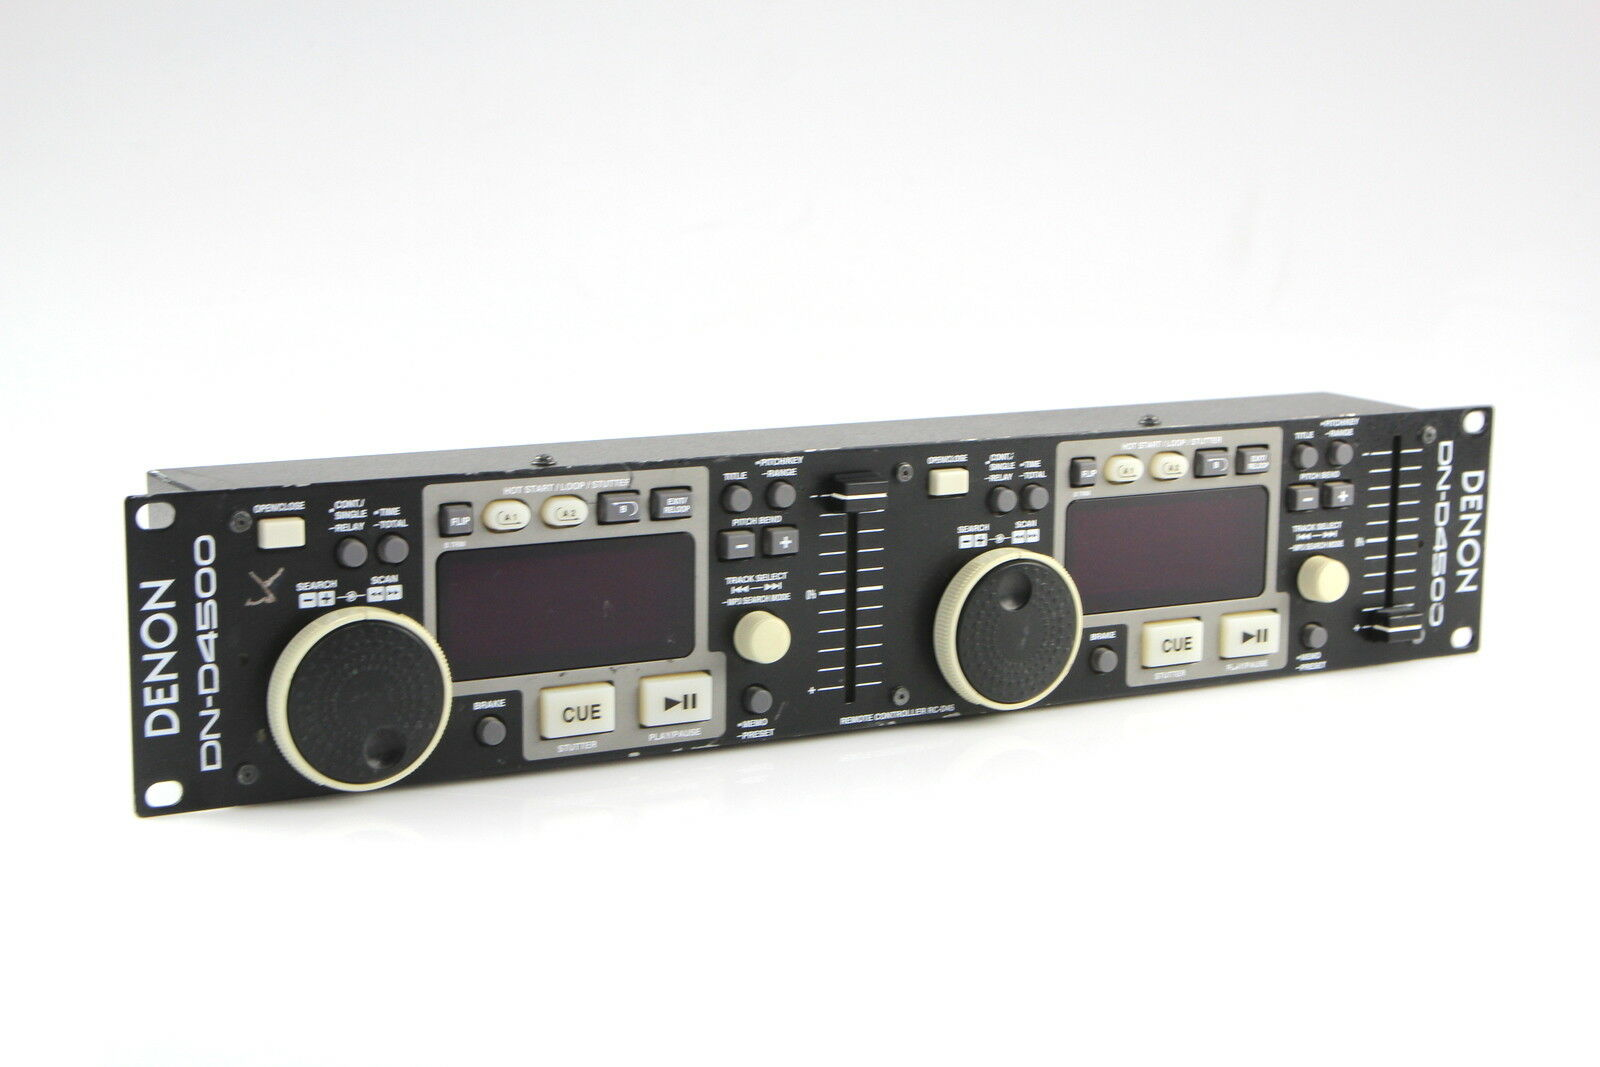 Denon DN-D4500 Dual CD/MP3 Player 1 of 7Only 1 available ...